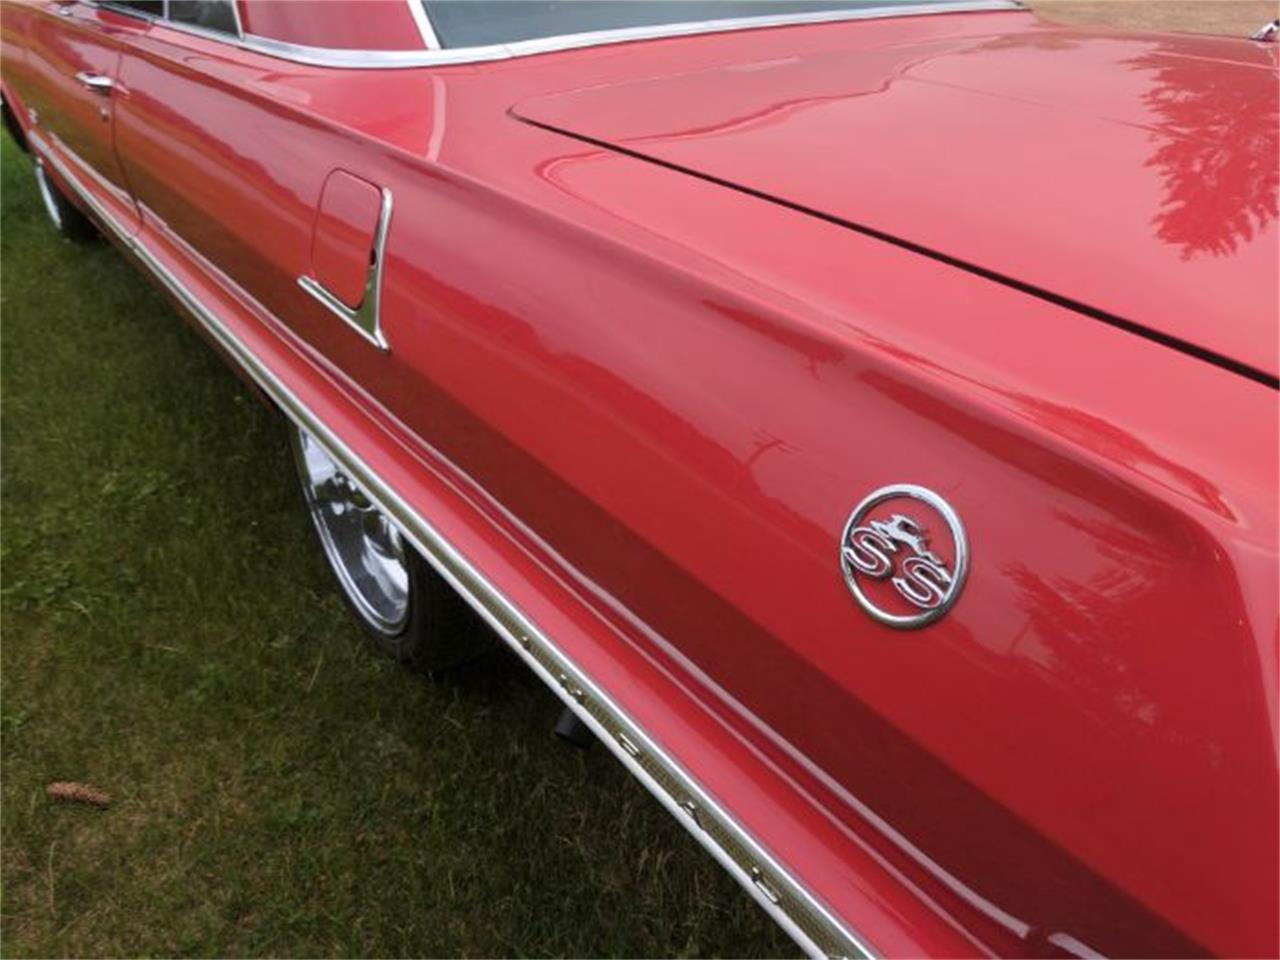 Large Picture of Classic '63 Impala located in Cadillac Michigan - $23,900.00 - LAFC